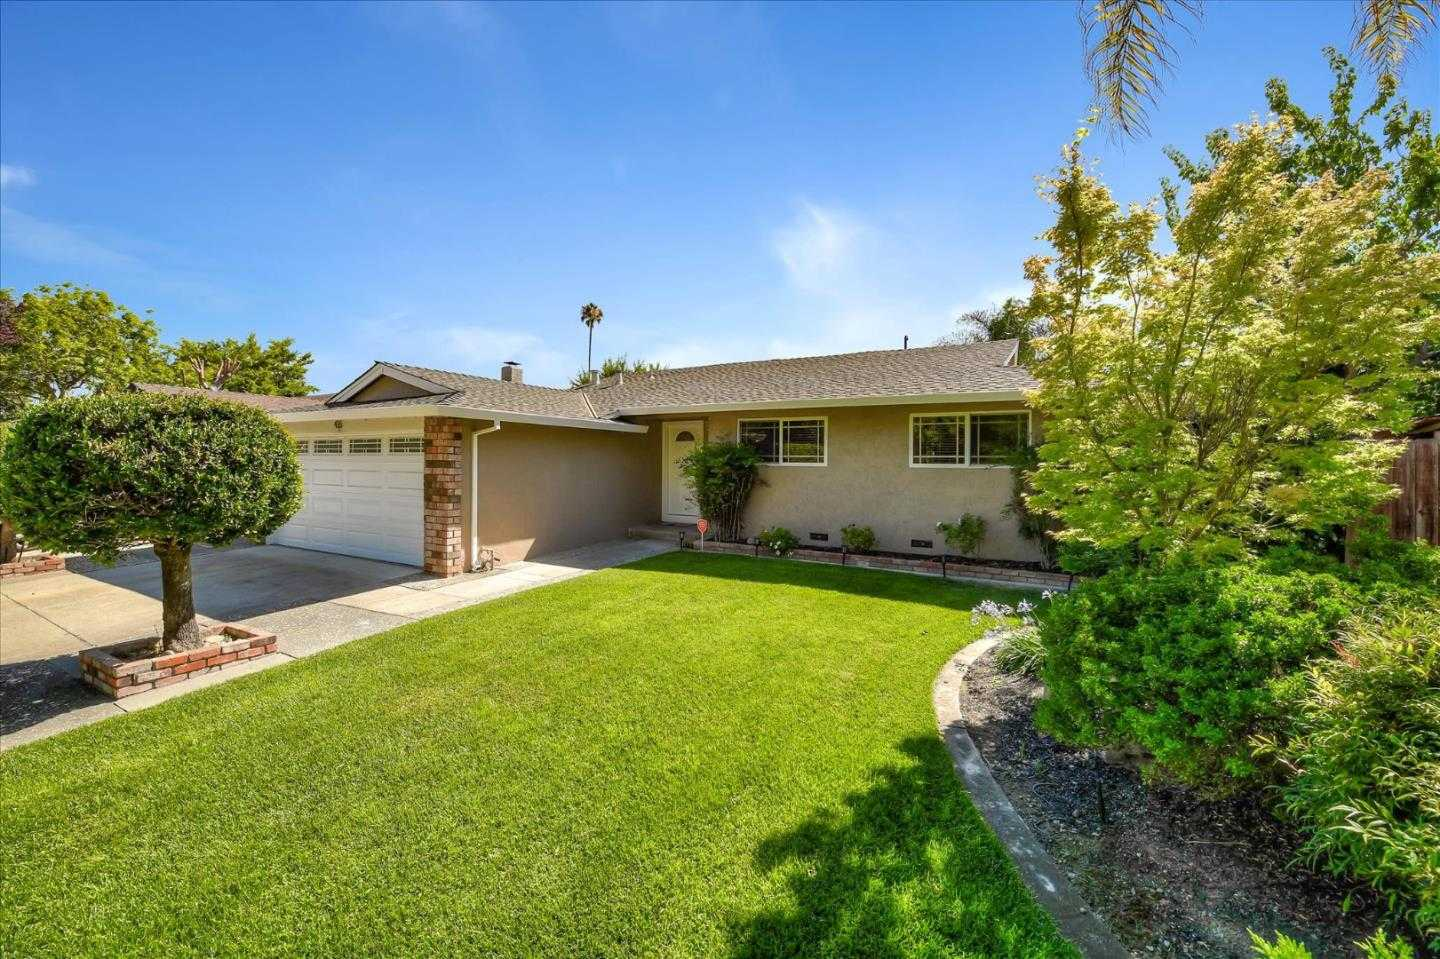 $1,125,000 - 3Br/2Ba -  for Sale in San Jose